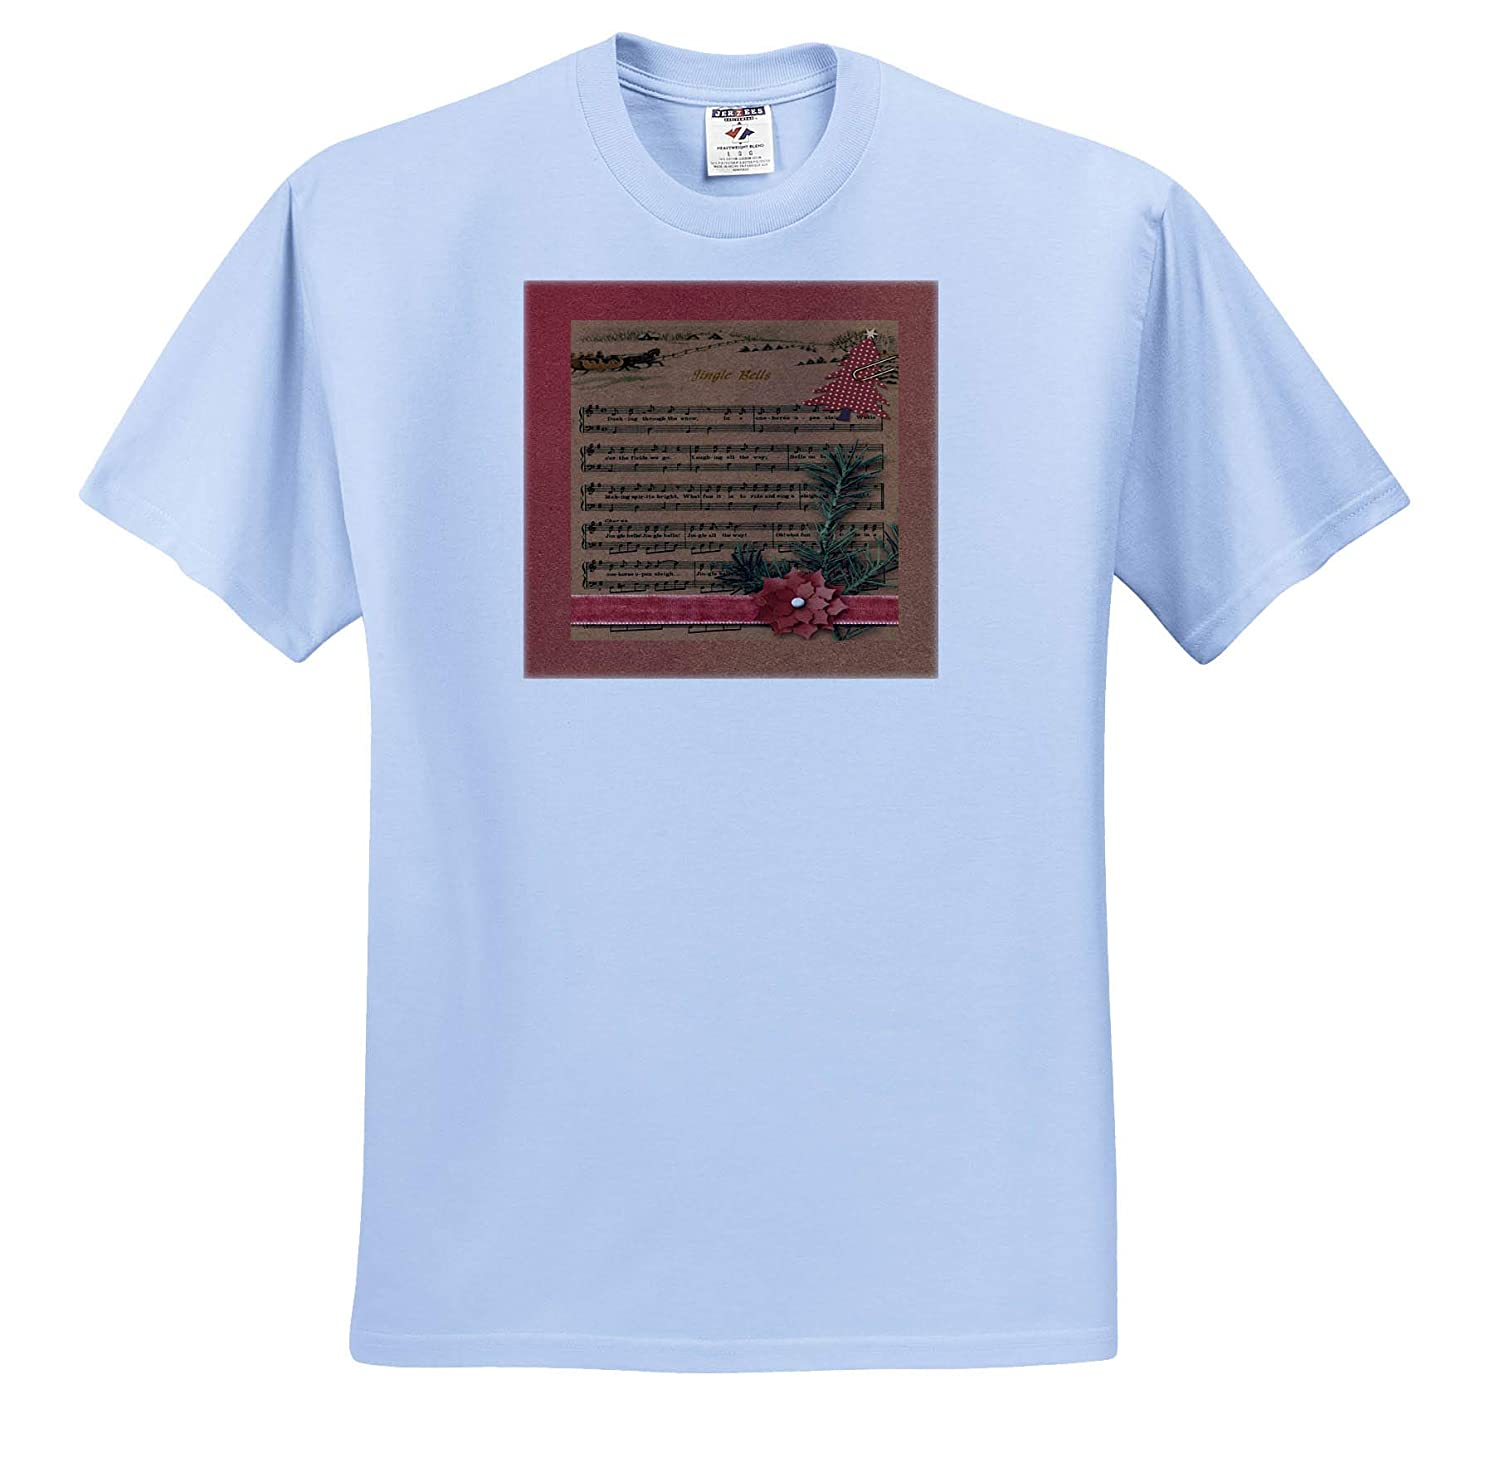 Sled with Horse in Snow 3dRose Beverly Turner Christmas Design T-Shirts Red Dotted Tree Jingle Bell Music Sheet